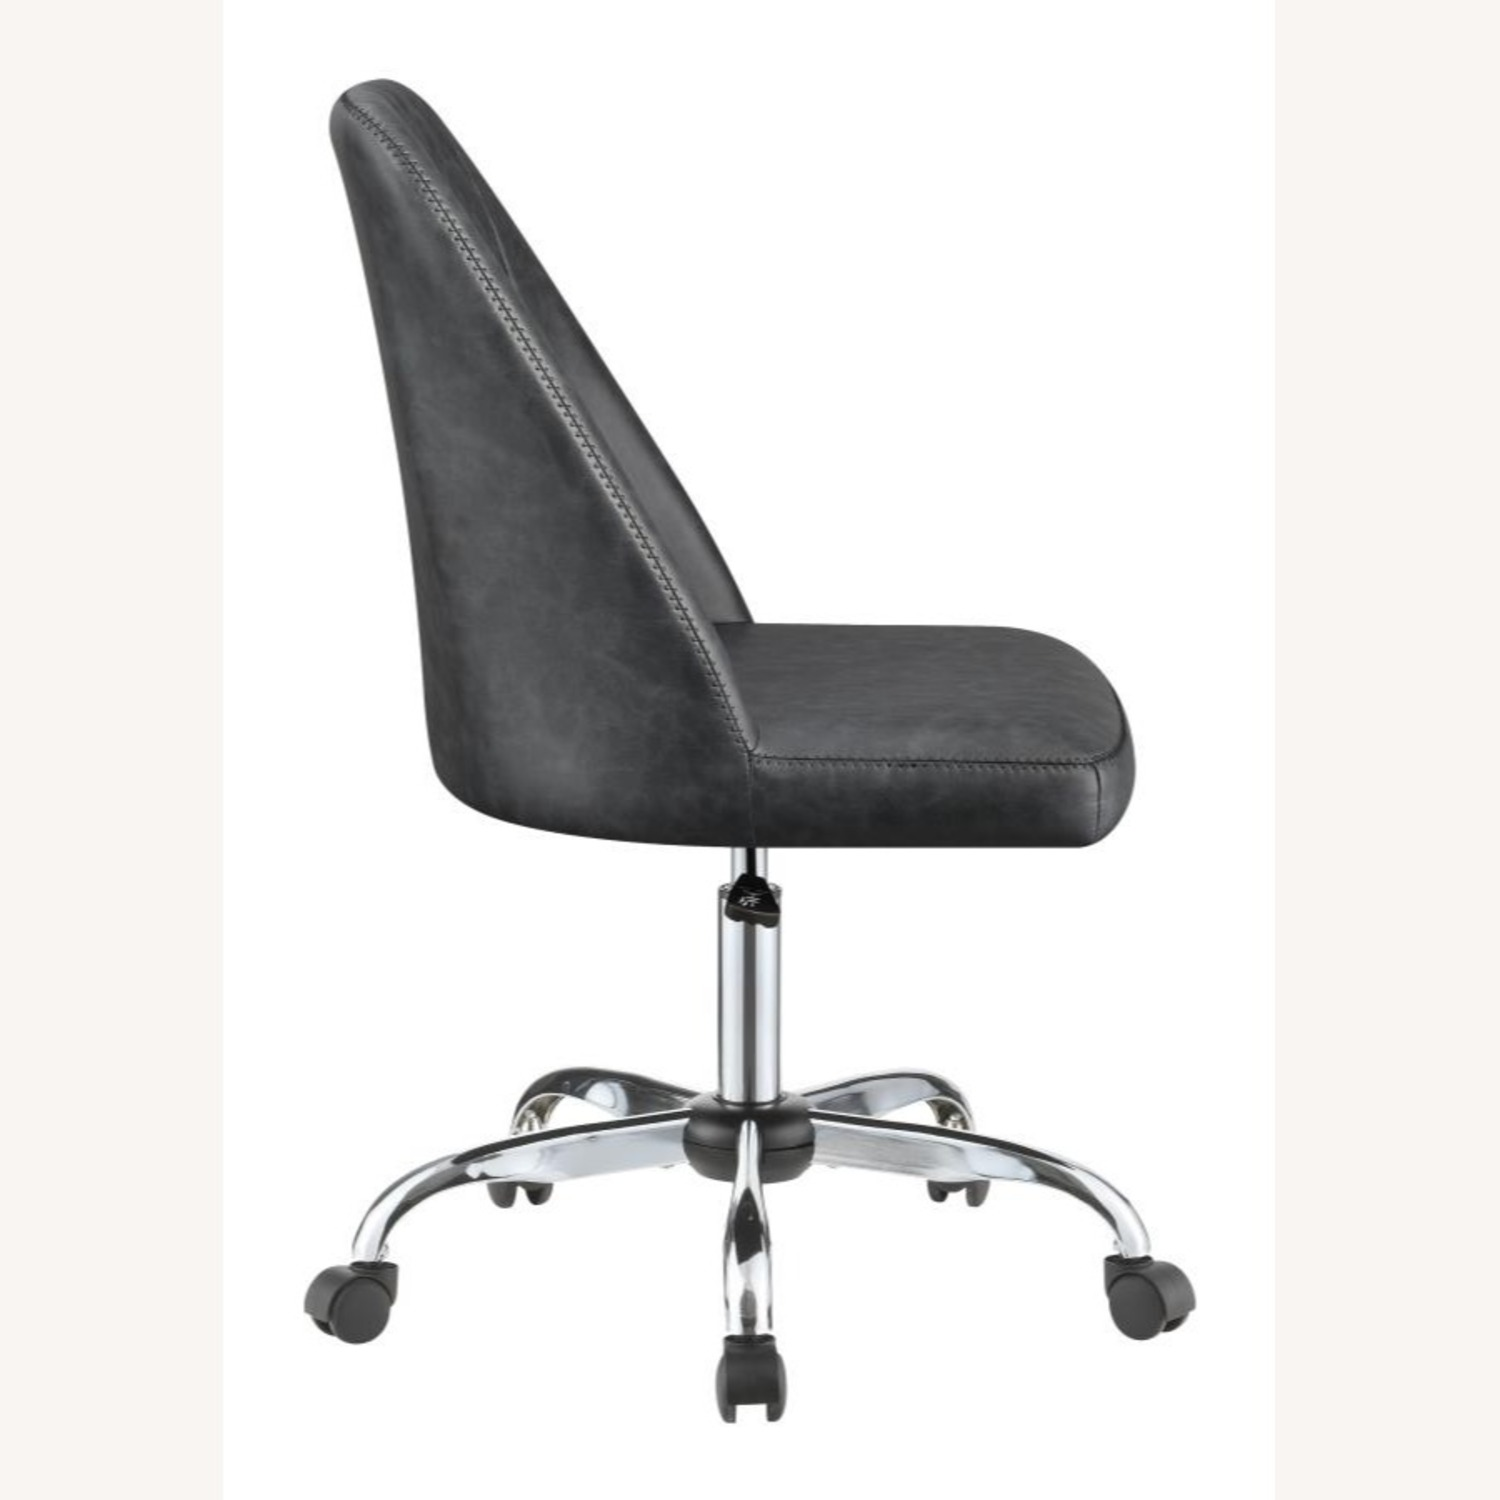 Office Chair In Tufted Grey Leatherette Upholstery - image-5